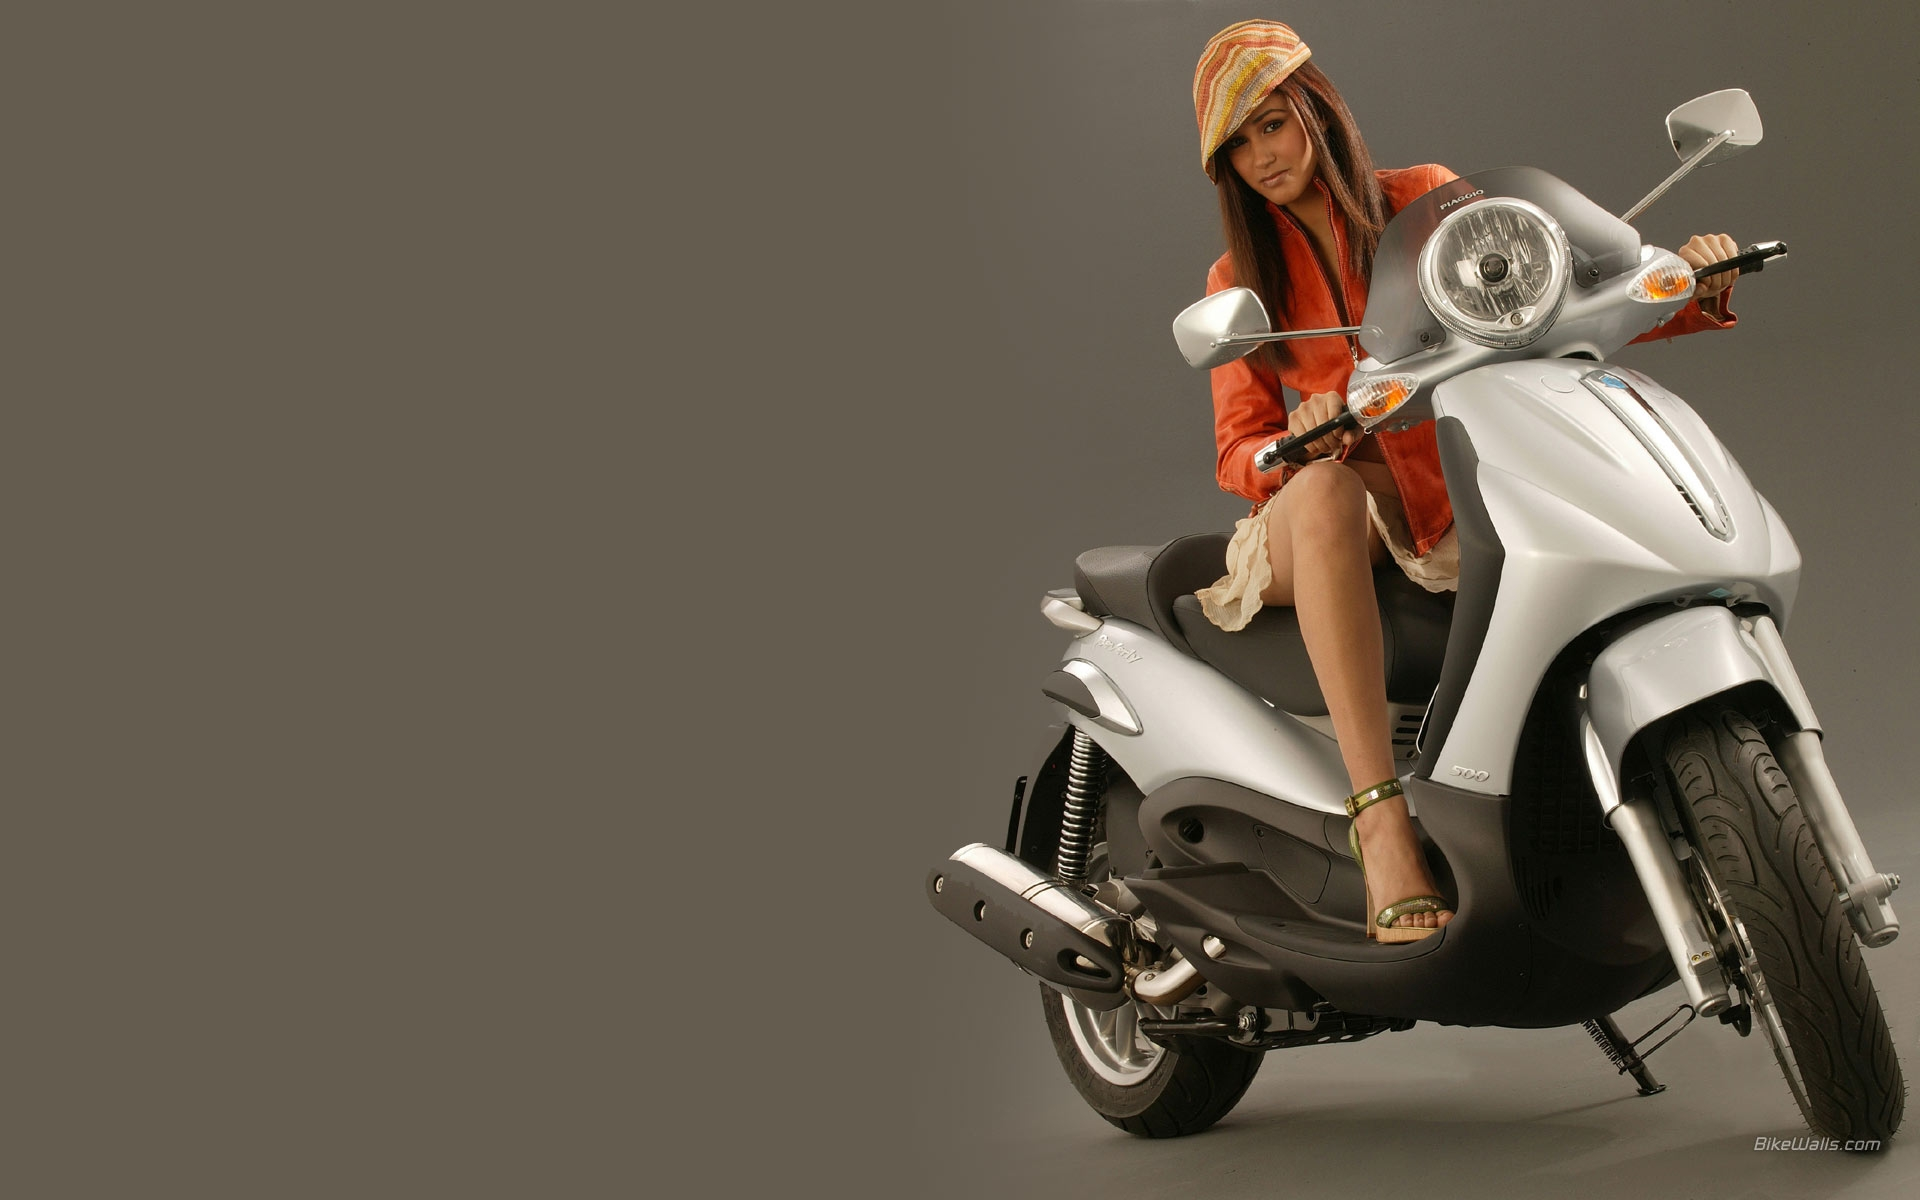 PIAGGIO BEVERLY brown